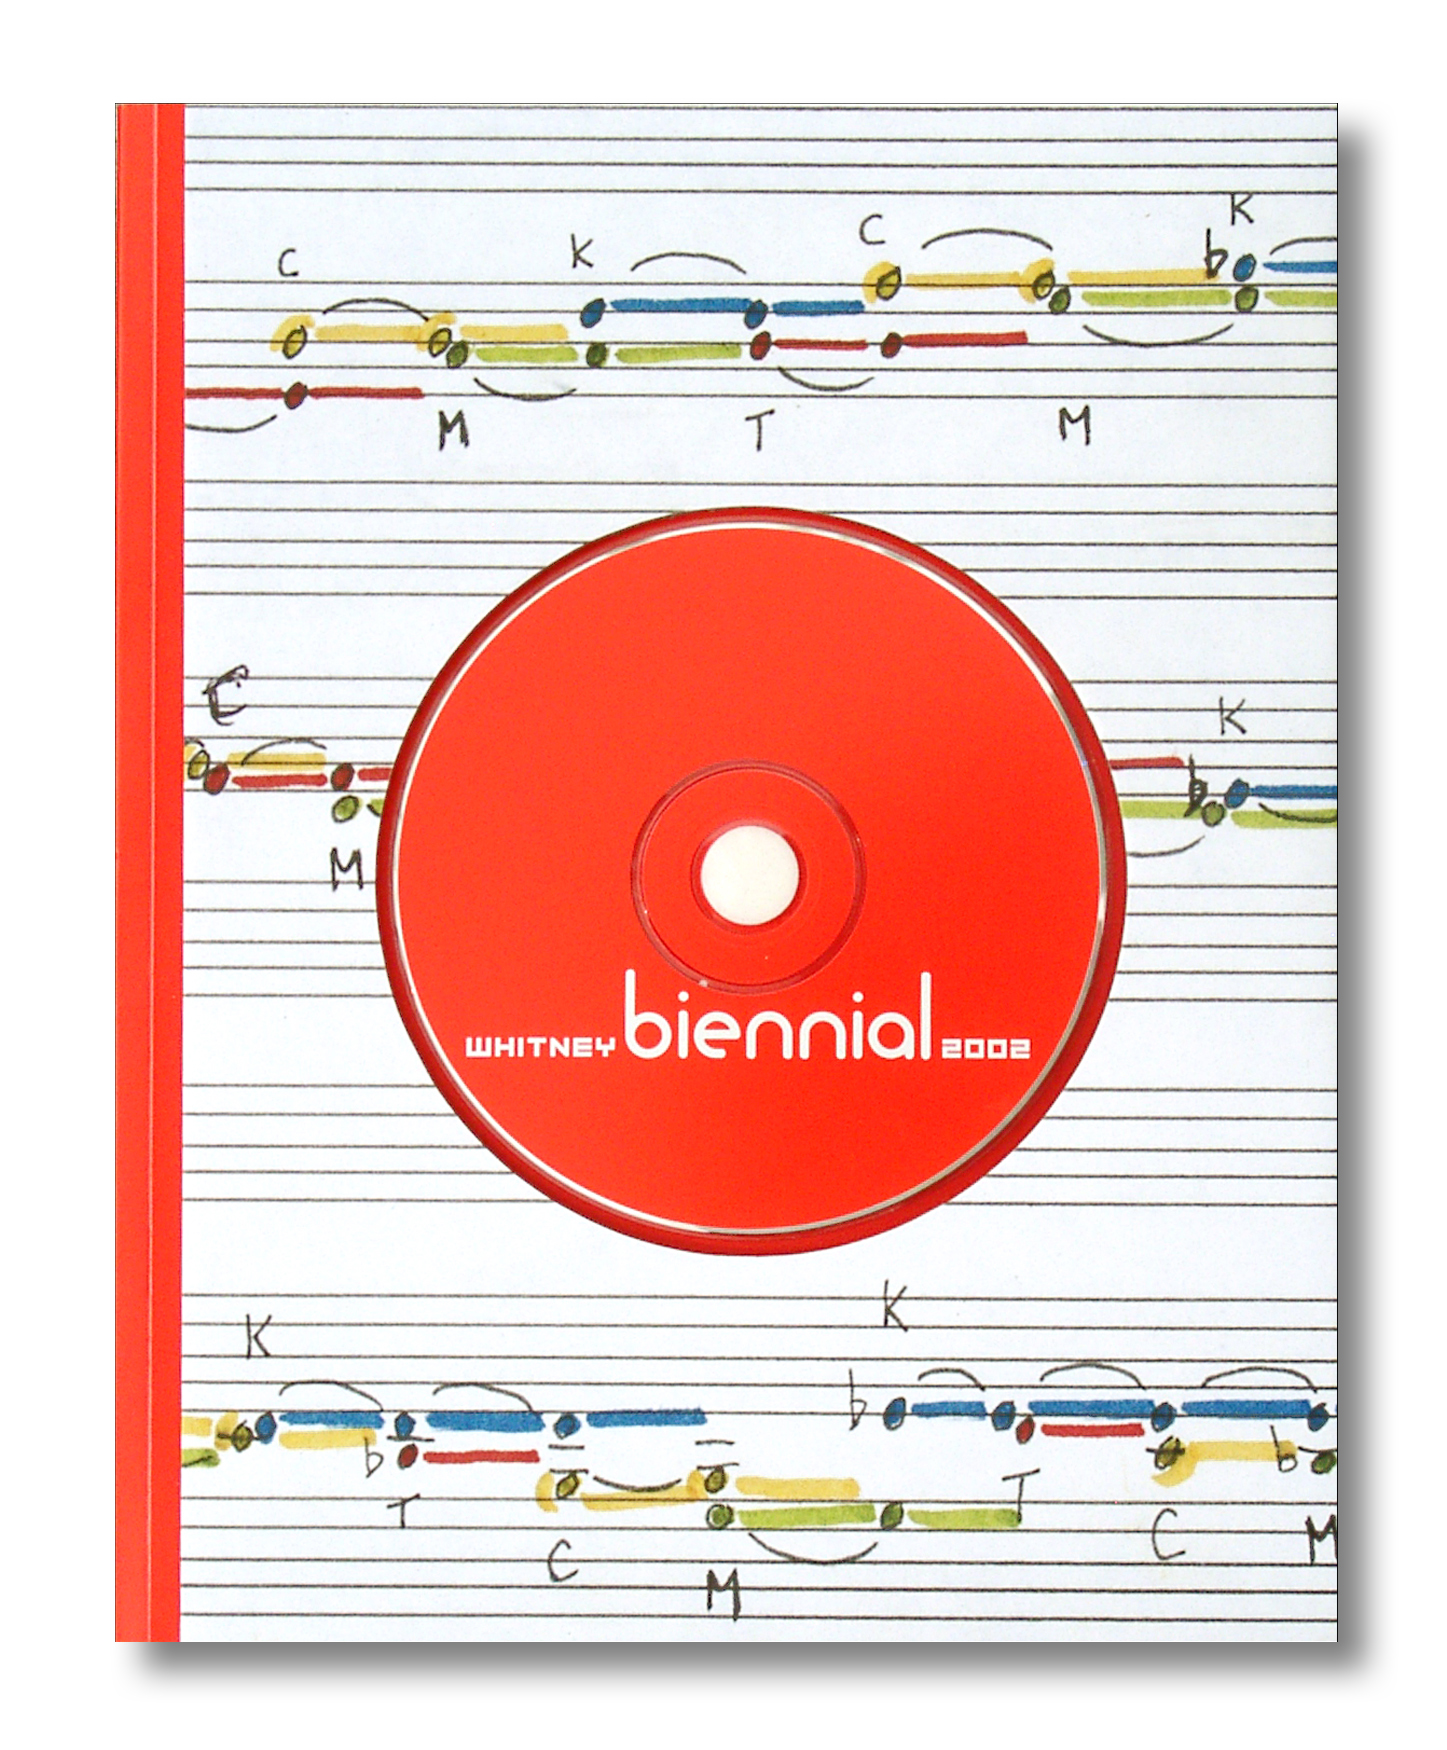 The cover for the 2002 Whitney Biennial catalog which features an excerpt of a musical score by Meredith Monk